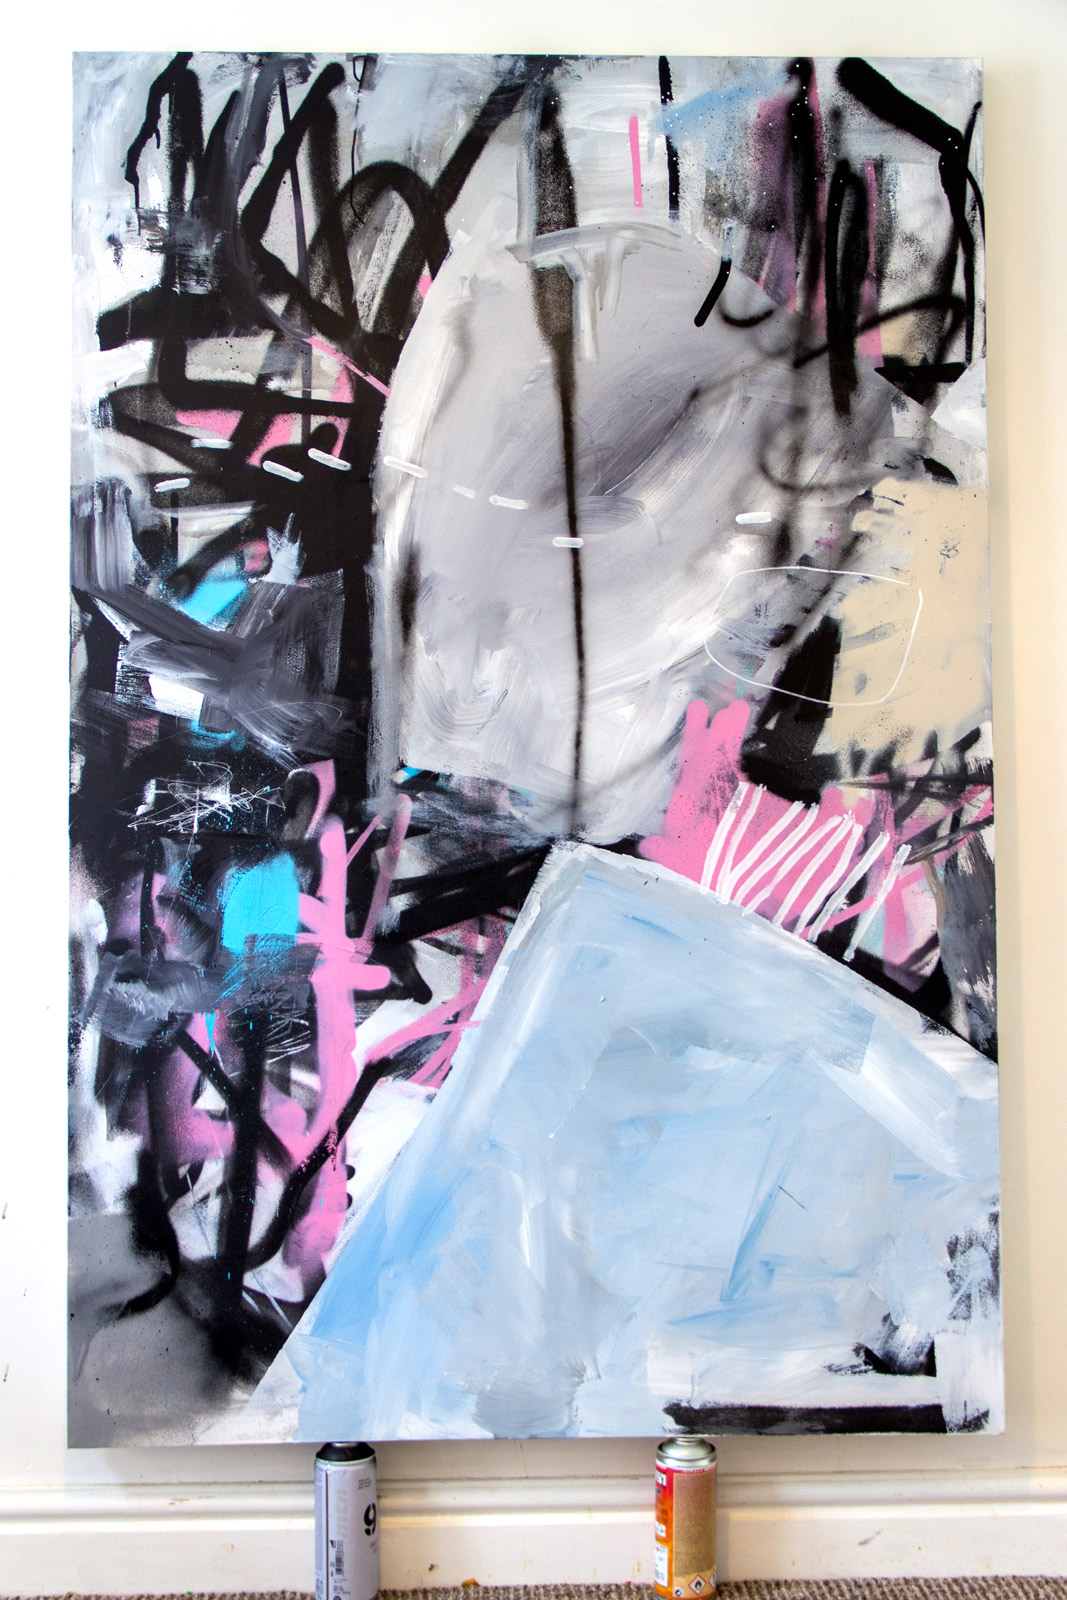 brad-waters-painting-vision-peripherique